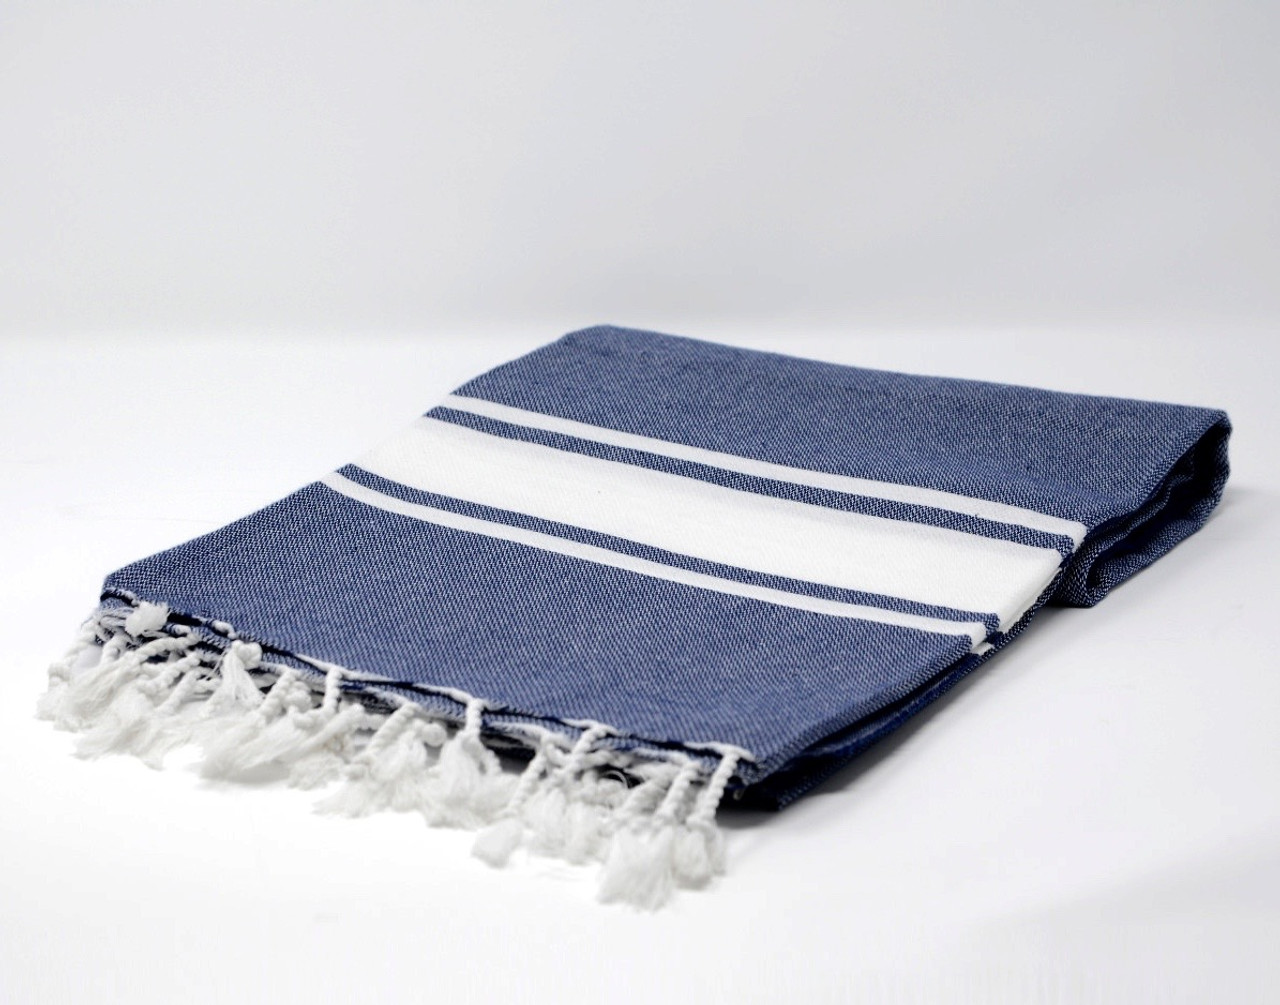 Sanibel Turkish Beach Towel In Navy Blue With A White Stripes